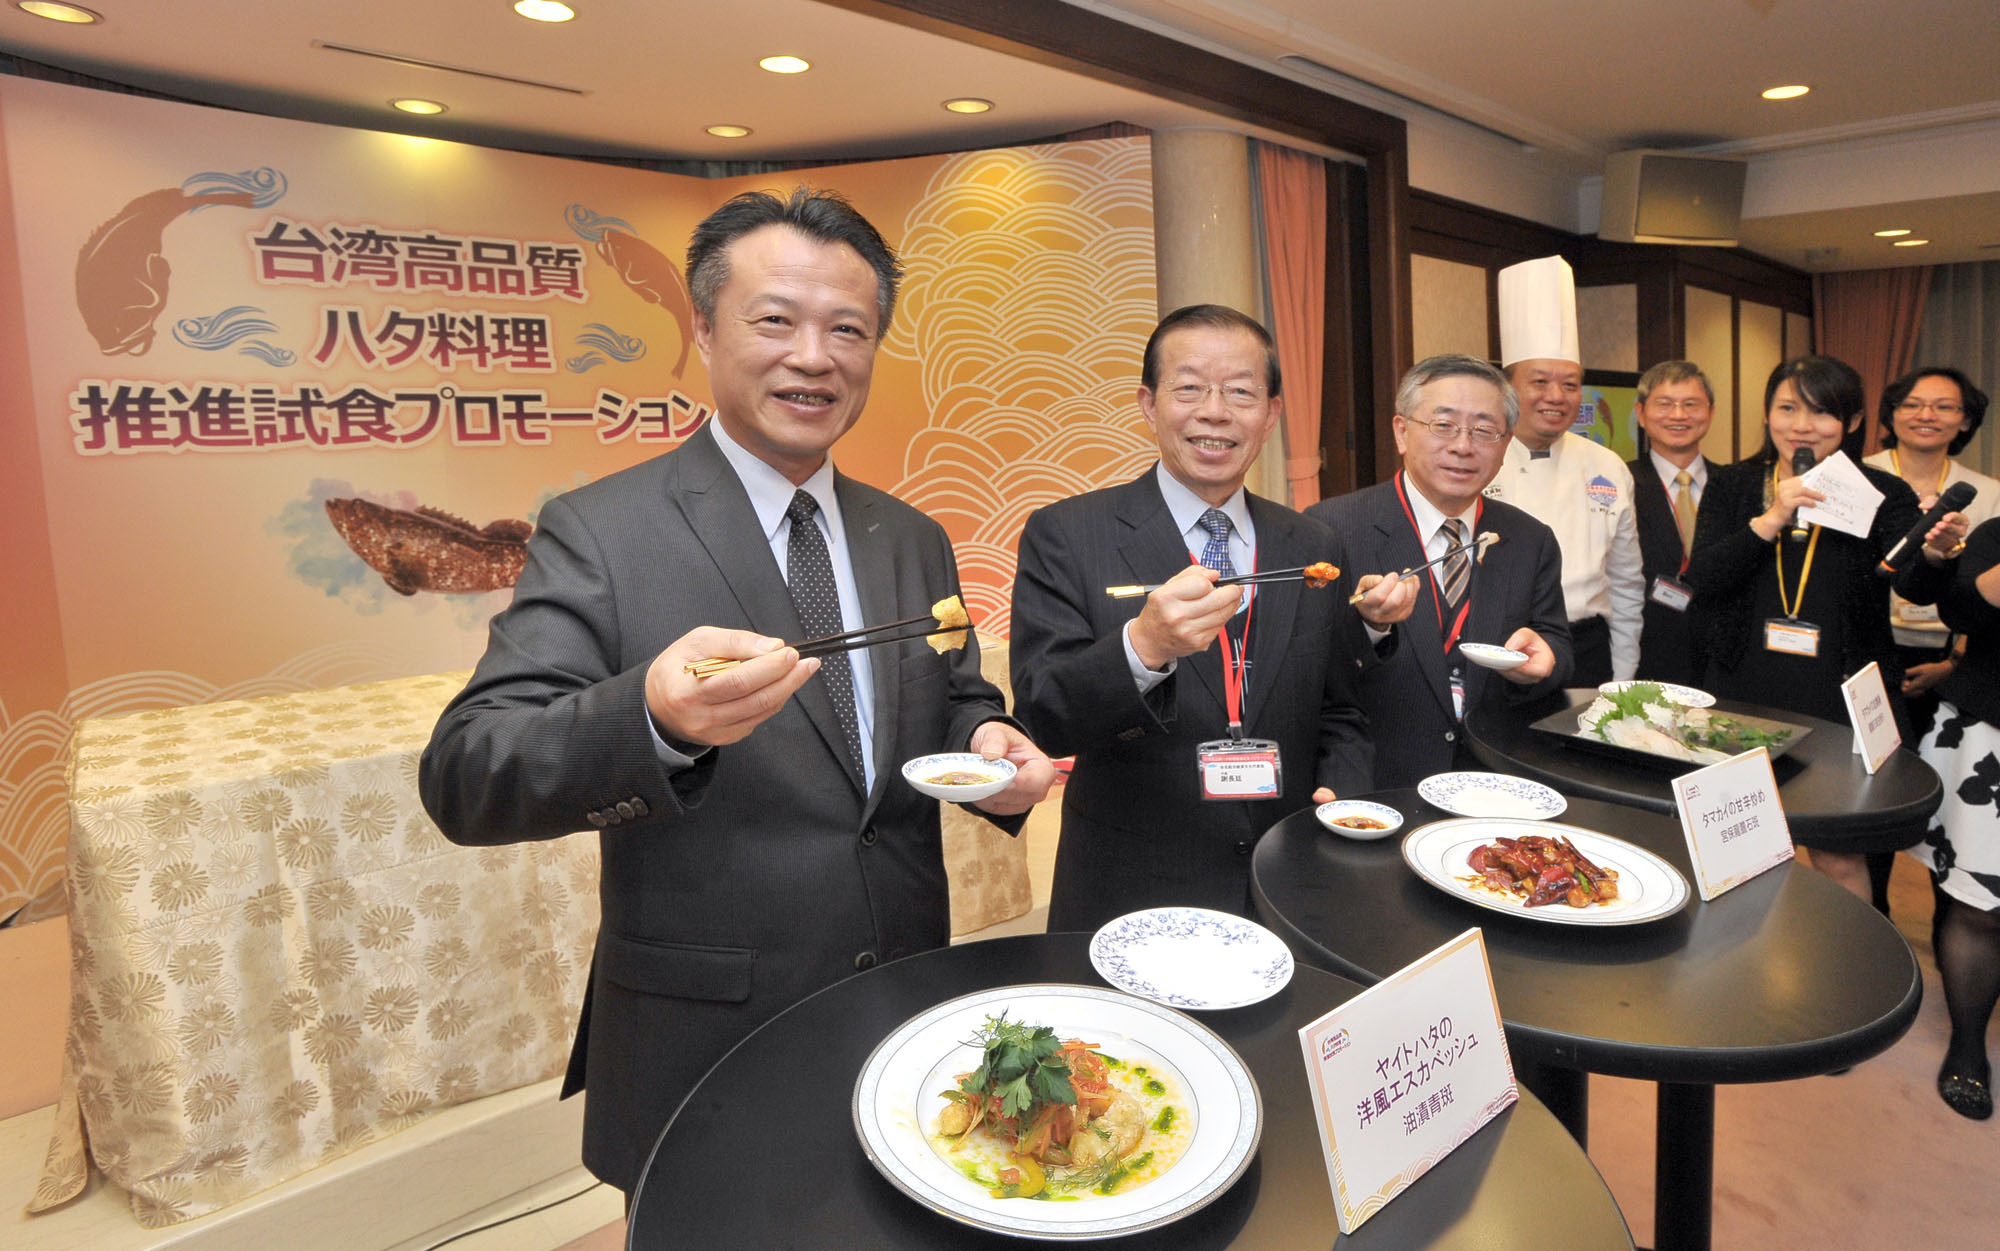 From left: Chang-Liang Weng, deputy minister of the Council of Agriculture Executive Yuan; Frank C. T. Hsieh, representative of the Taipei Economic and Cultural Representative Office in Japan; and Toshiro Shirasu, president of the Japan Fisheries Association hold up pieces of Taiwanese grouper at a promotional event at the Taipei Economic and Cultural Representative Office in Japan on Dec. 5. | YOSHIAKI MIURA